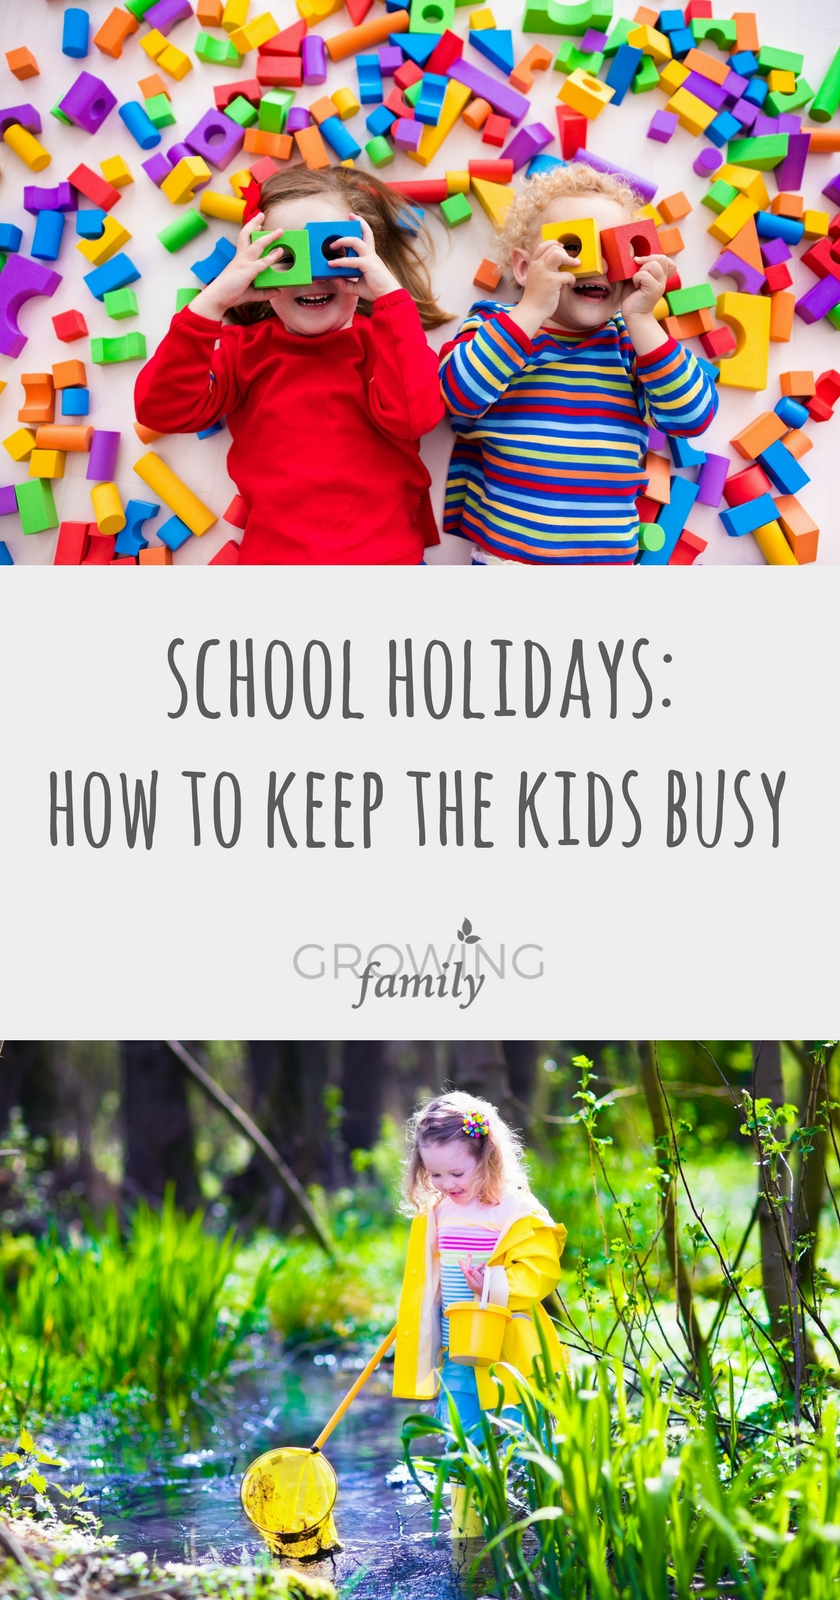 School Holidays Ideas For Keeping The Kids Busy Growing Family